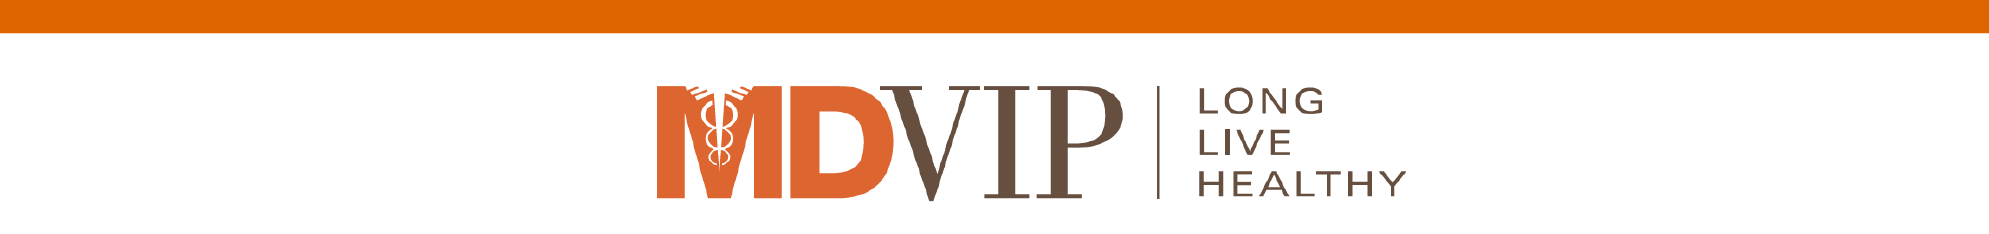 mdvip-banner2.png